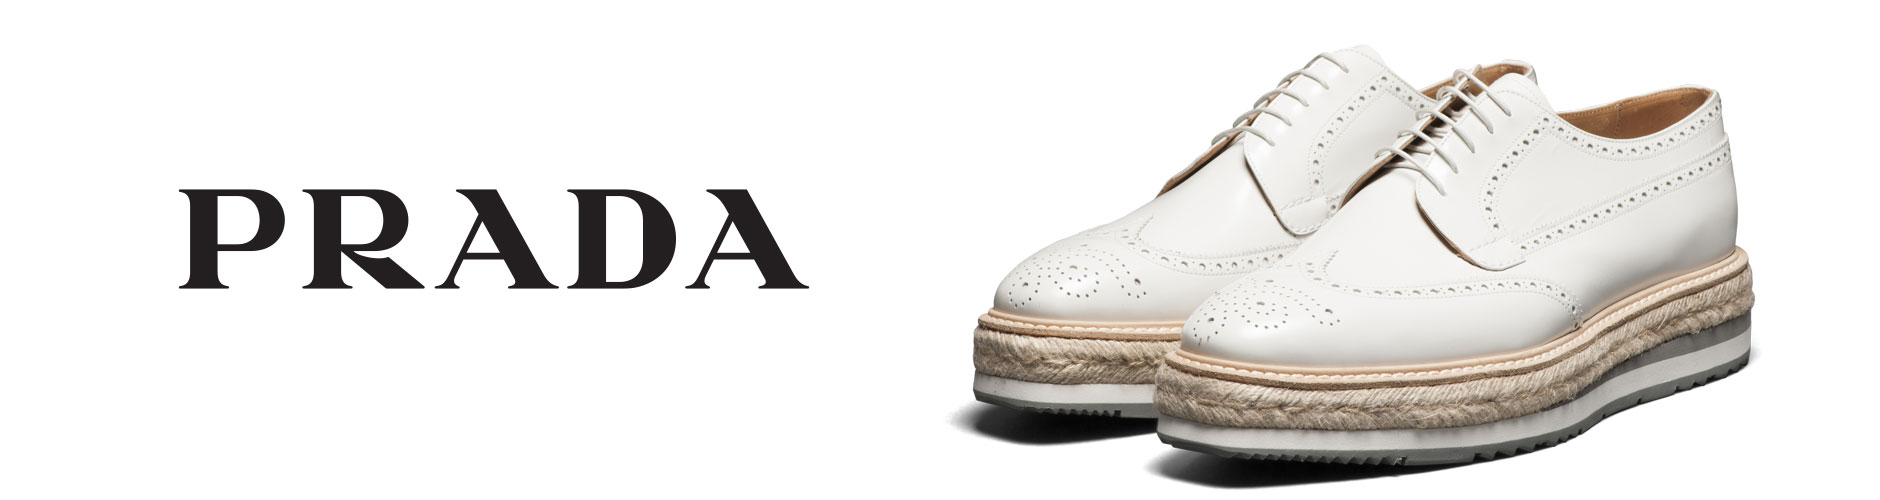 Prada Men's Shoes